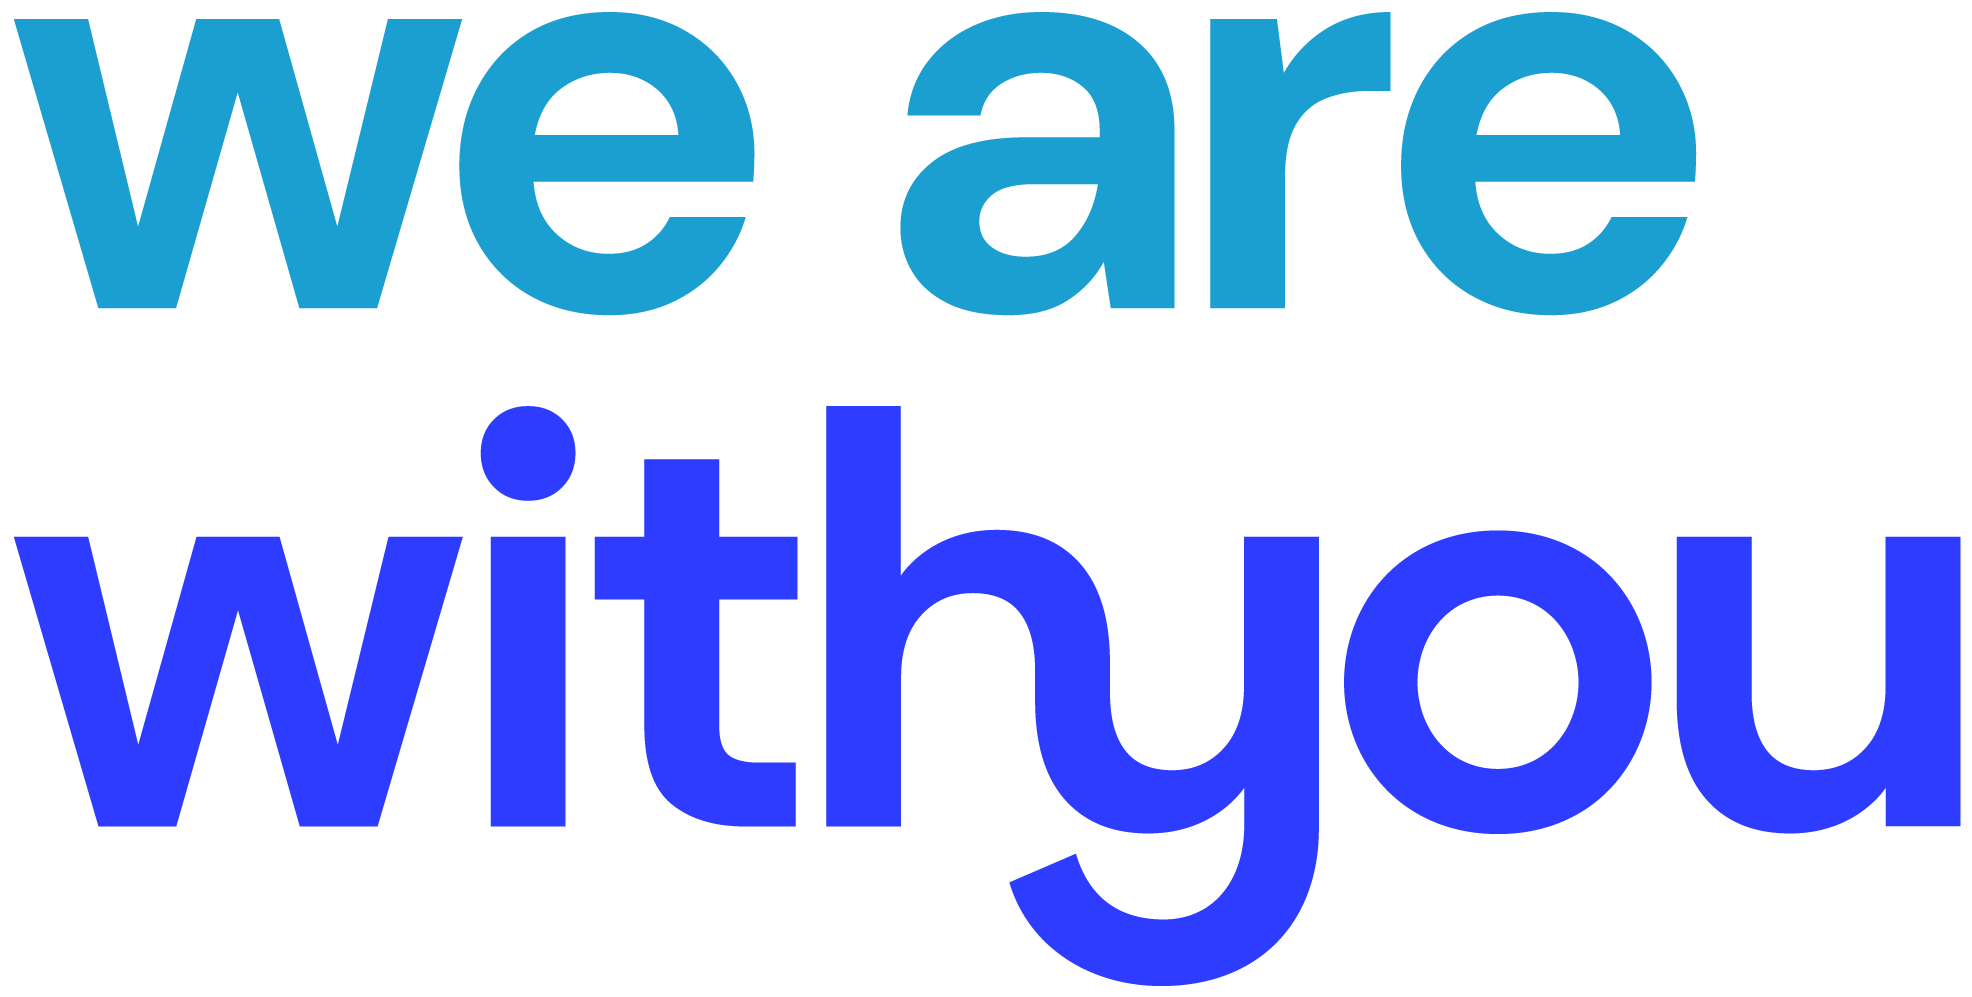 Copy-of-We-Are-With-You-Logo-White-Background